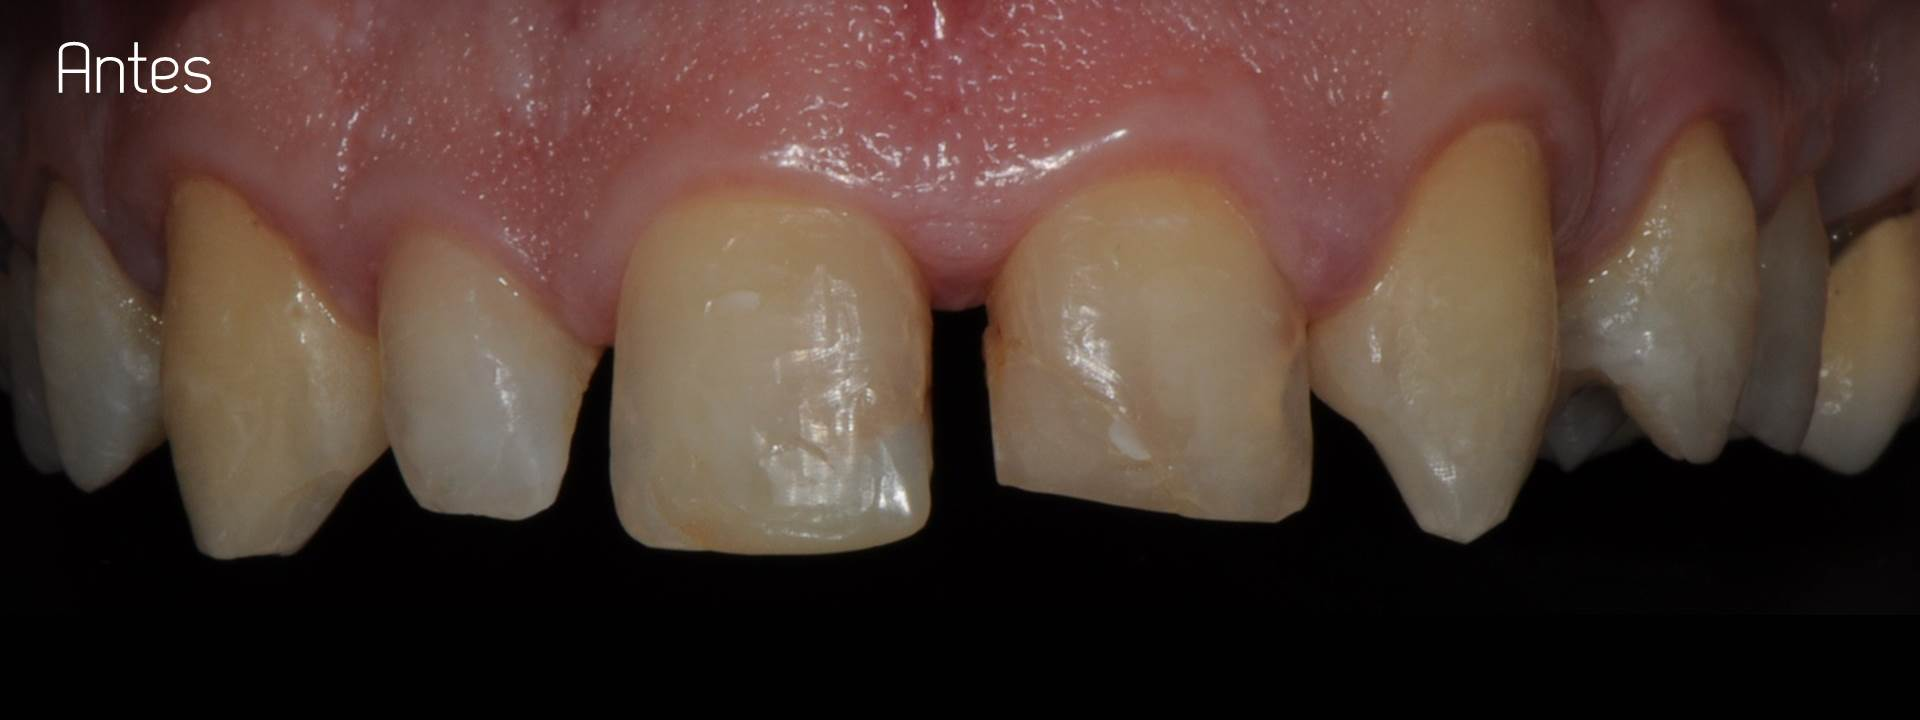 Porcelain crowns case 2 estudi dental barcelona for Estudi dental barcelona